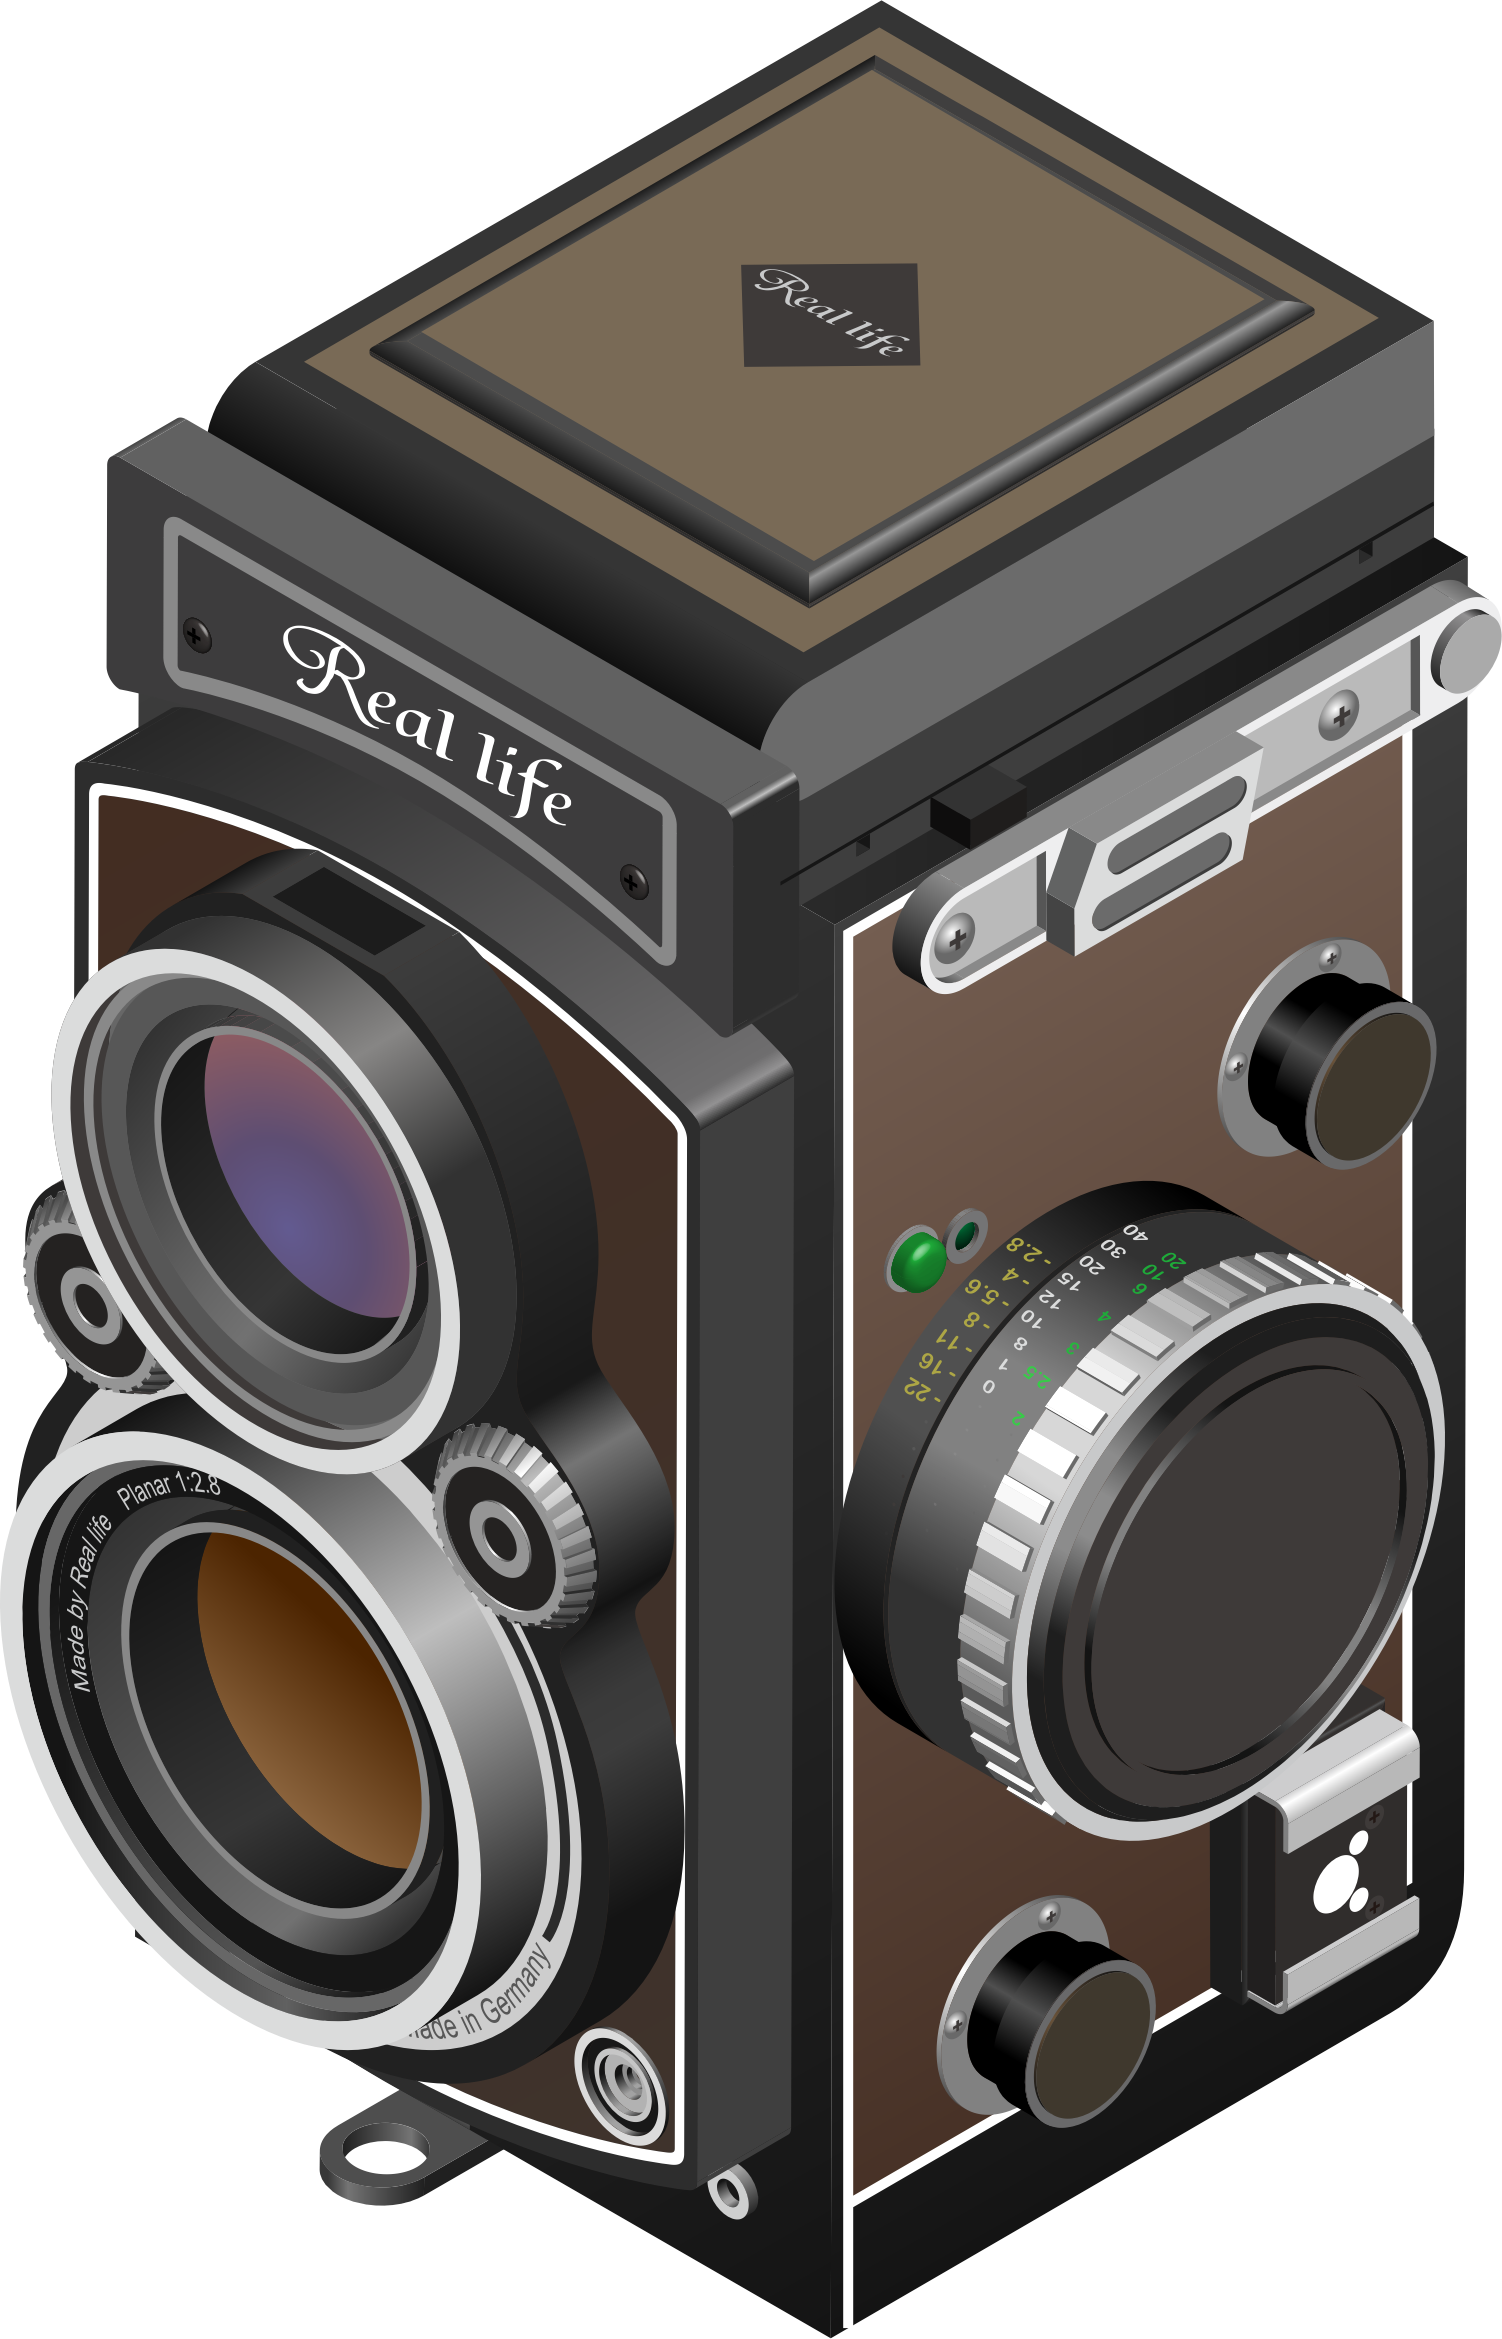 Twin-lens reflex camera by belier